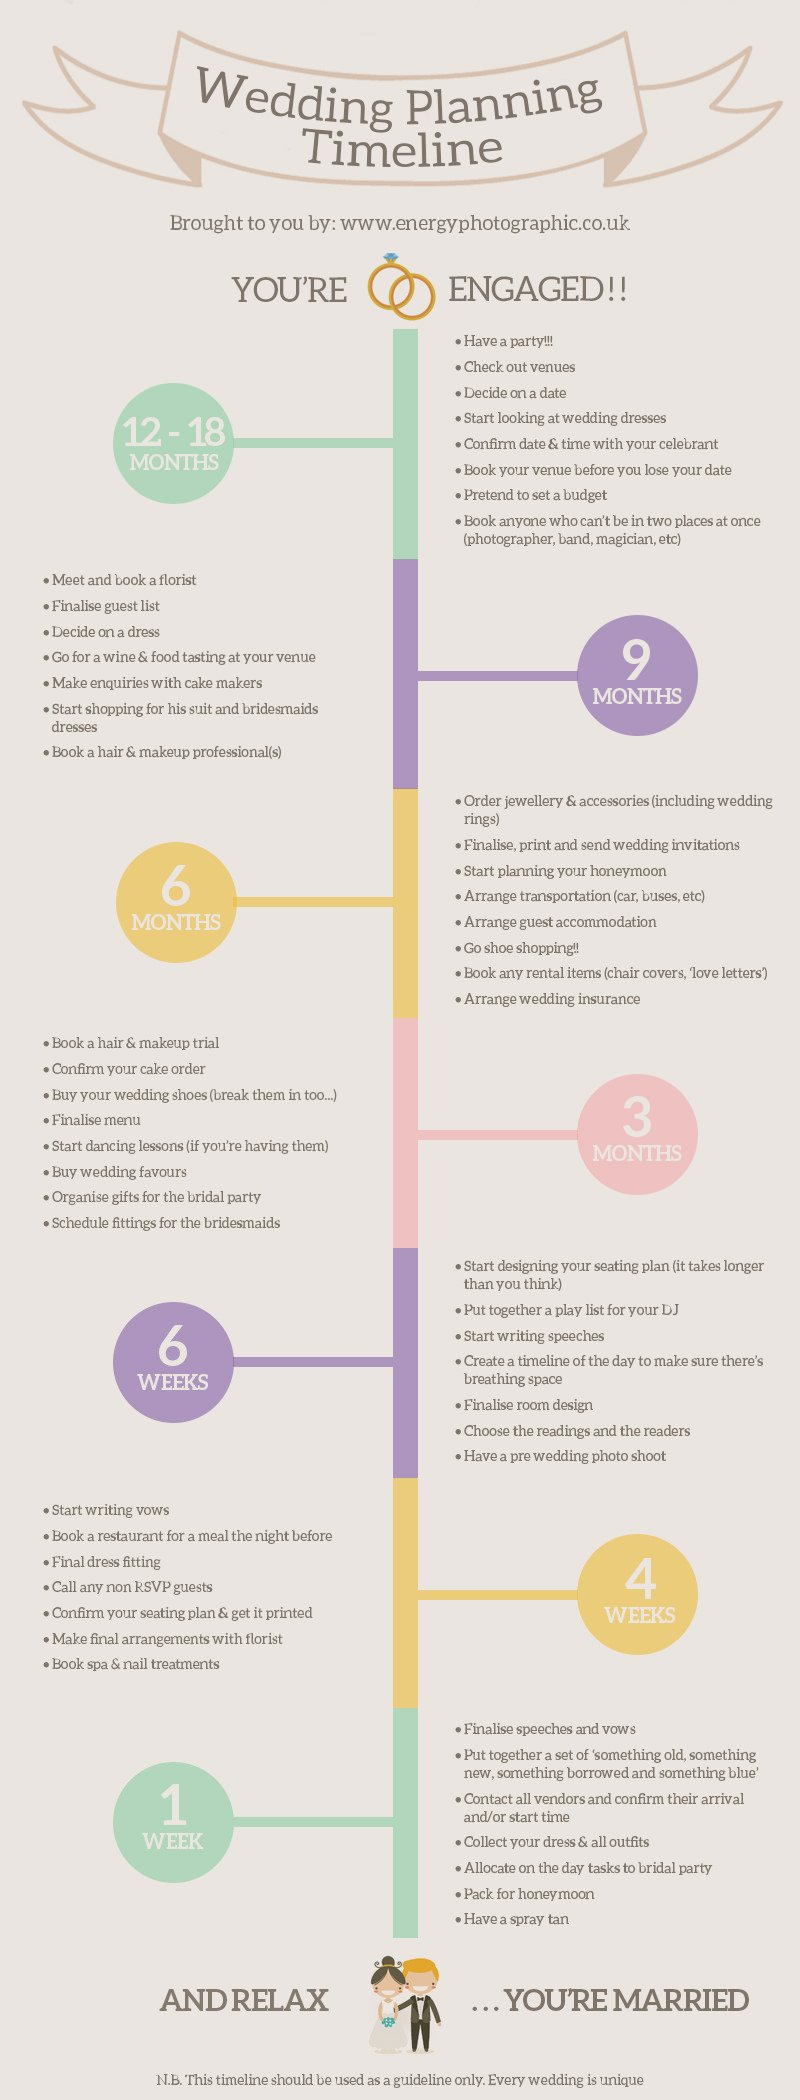 Wedding-Planning-Timeline-infographic-plaza